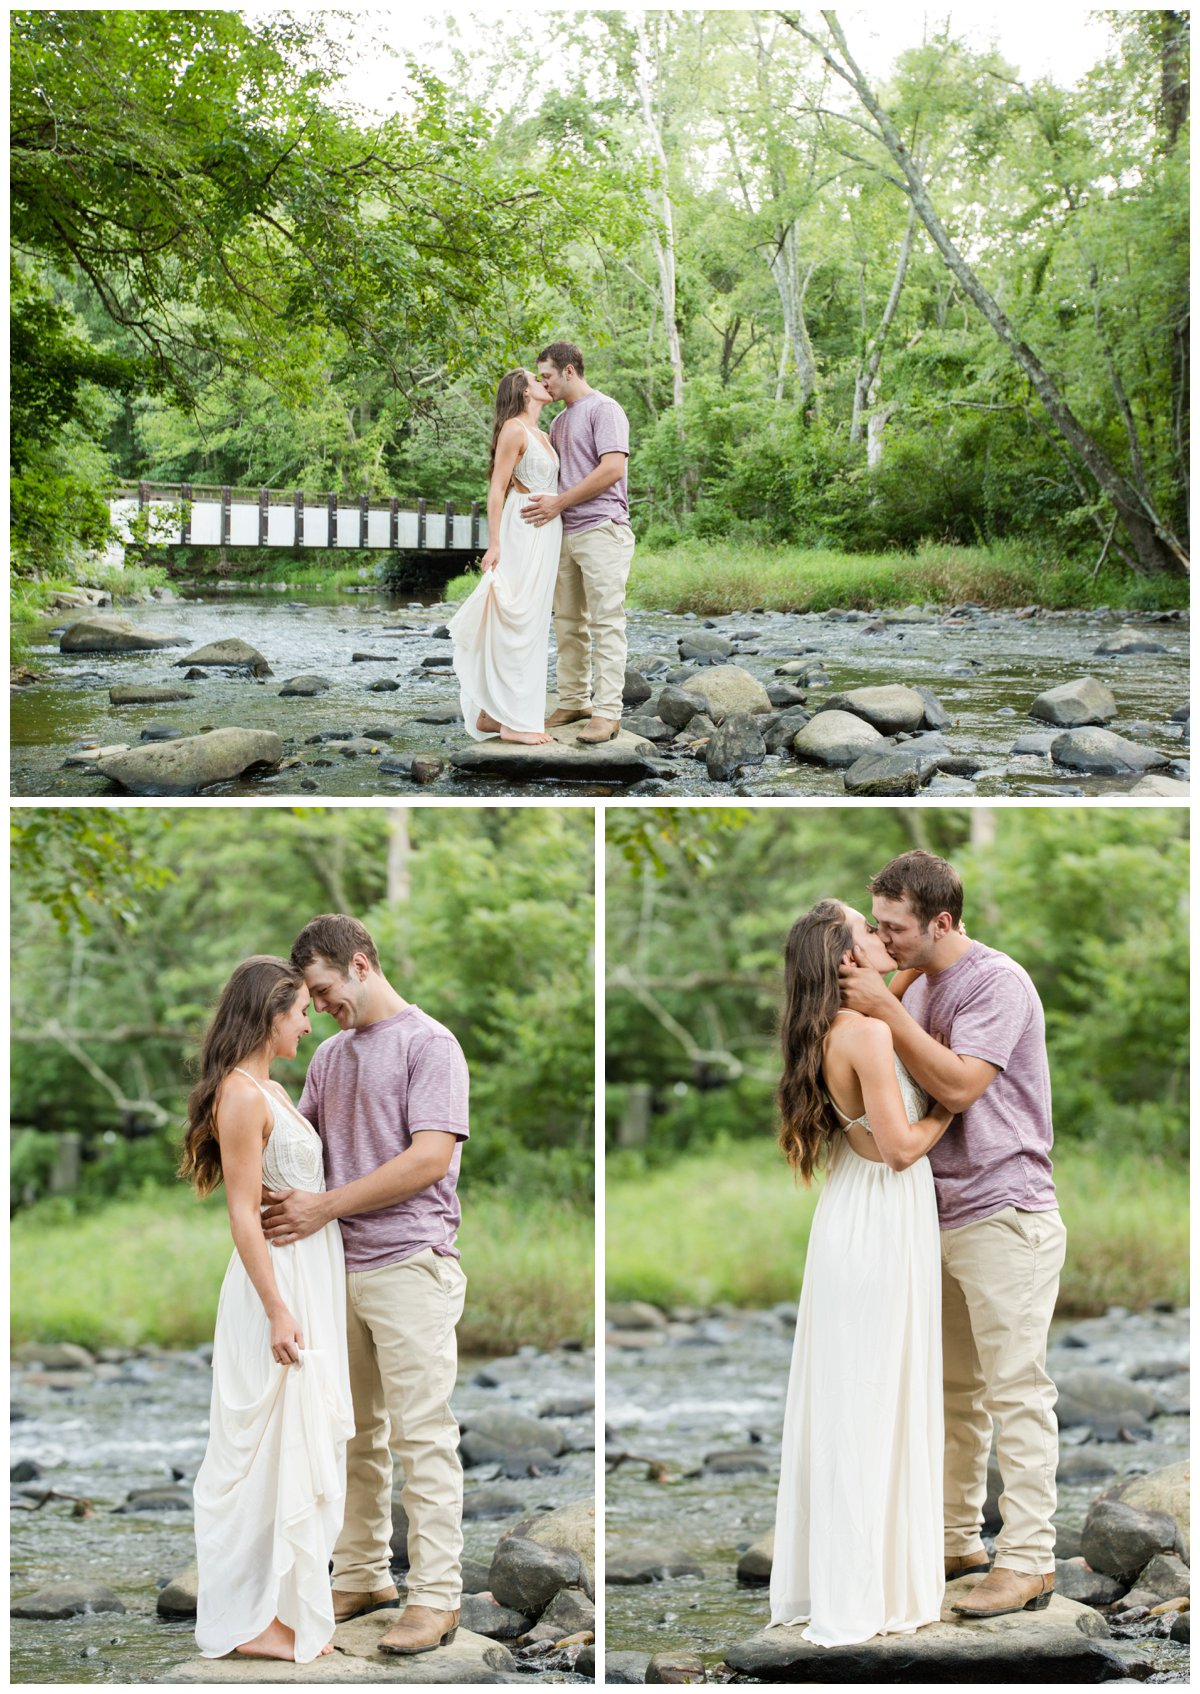 Jerusalem Mills Bohemian Engagement Photography in a stream in a white dress while kissing